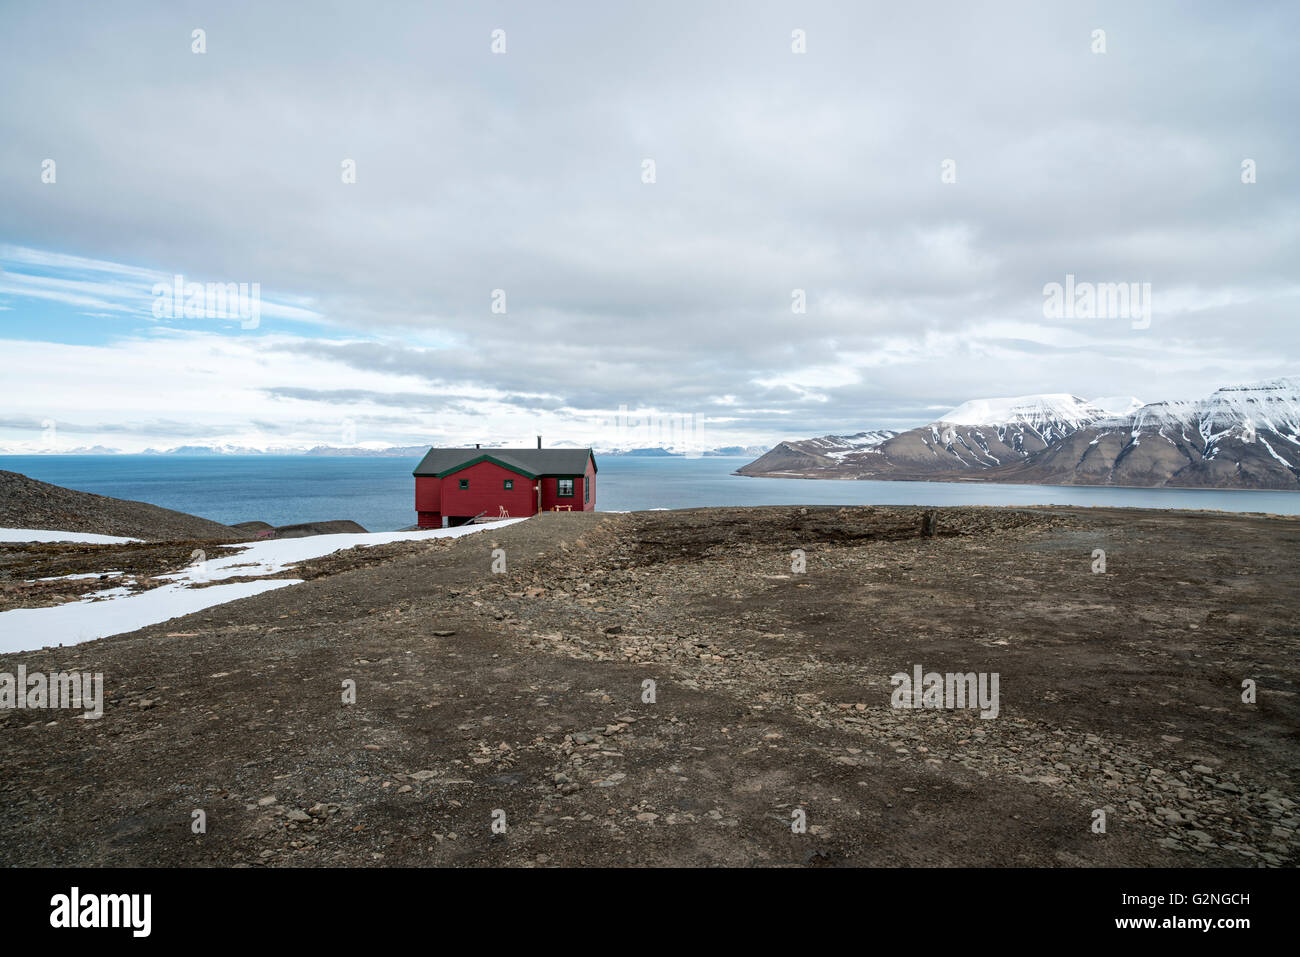 View over Adventfjorden, Svalbard, with red hut Spitsbergen Norway Rotes Holzhaus in der Bucht des Adventfjorden - Stock Image